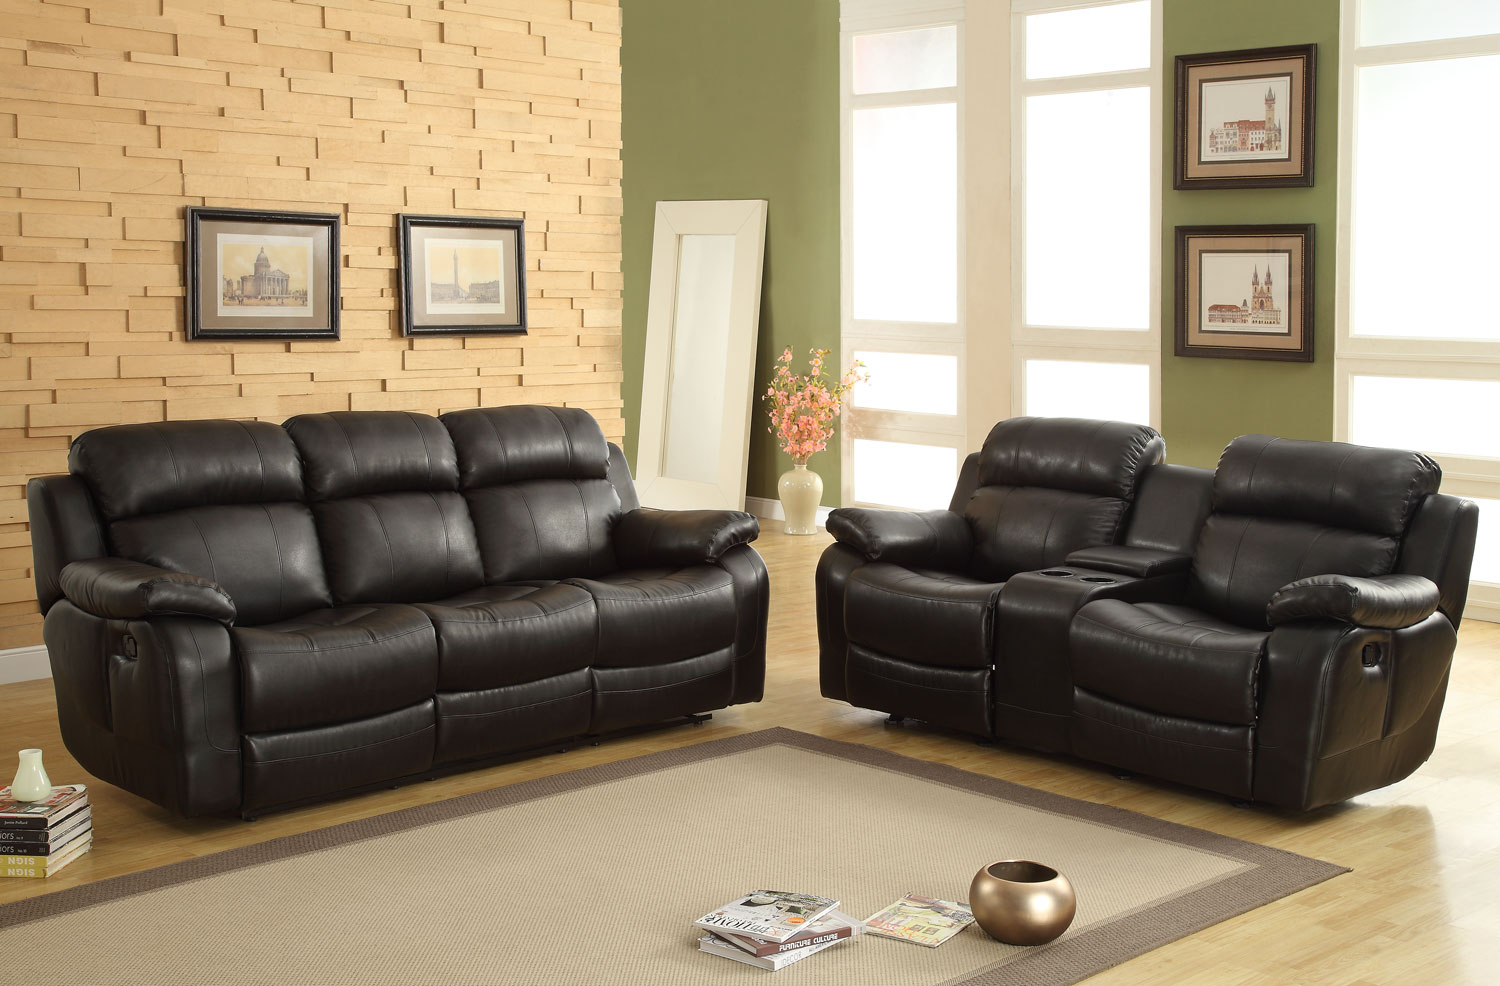 Swell Homelegance Marille Reclining Sofa Set Black Bonded Leather Match Pabps2019 Chair Design Images Pabps2019Com